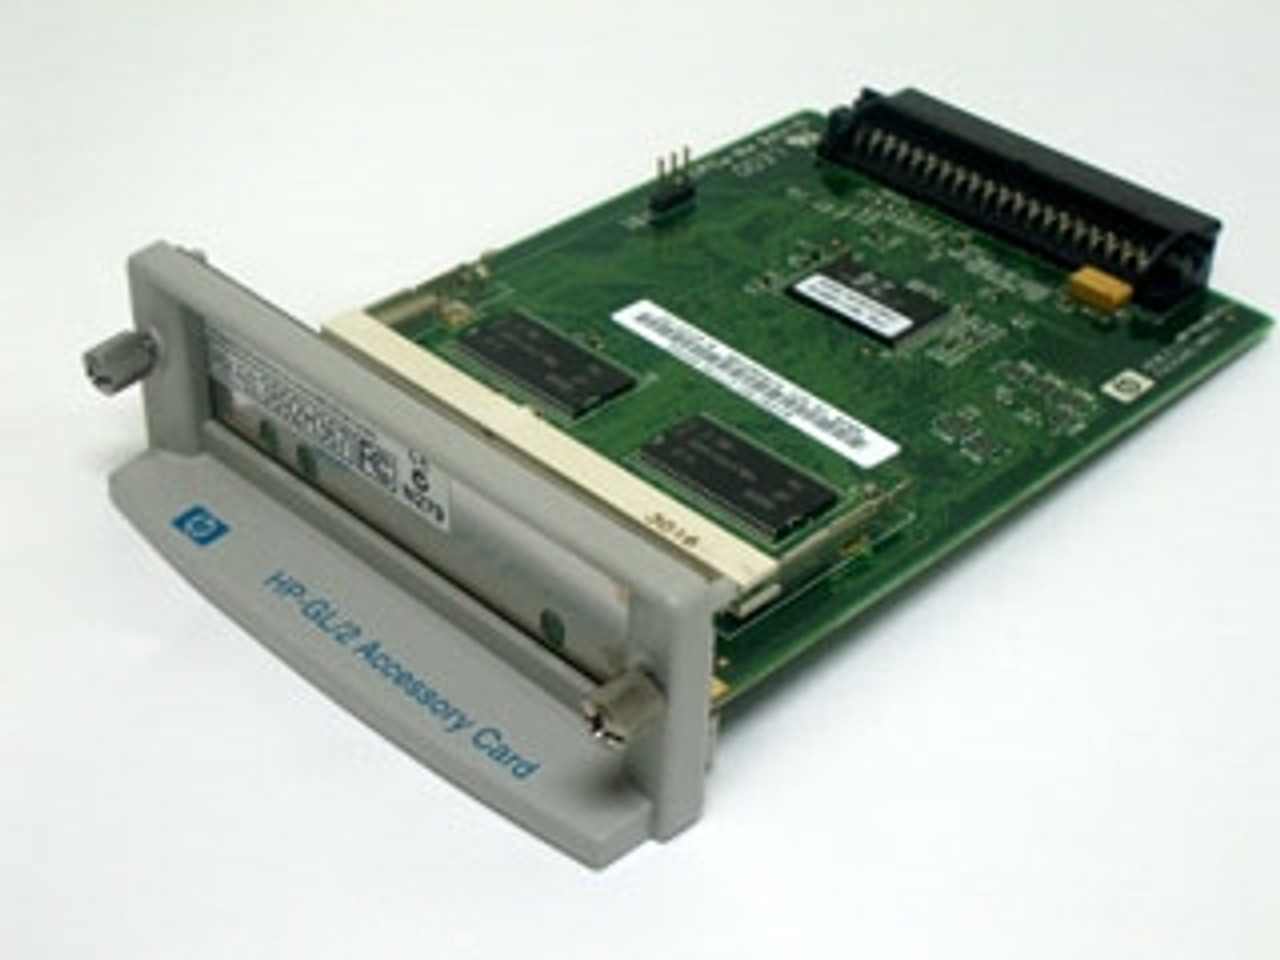 HP Designjet 500 GL2 Upgrade Card